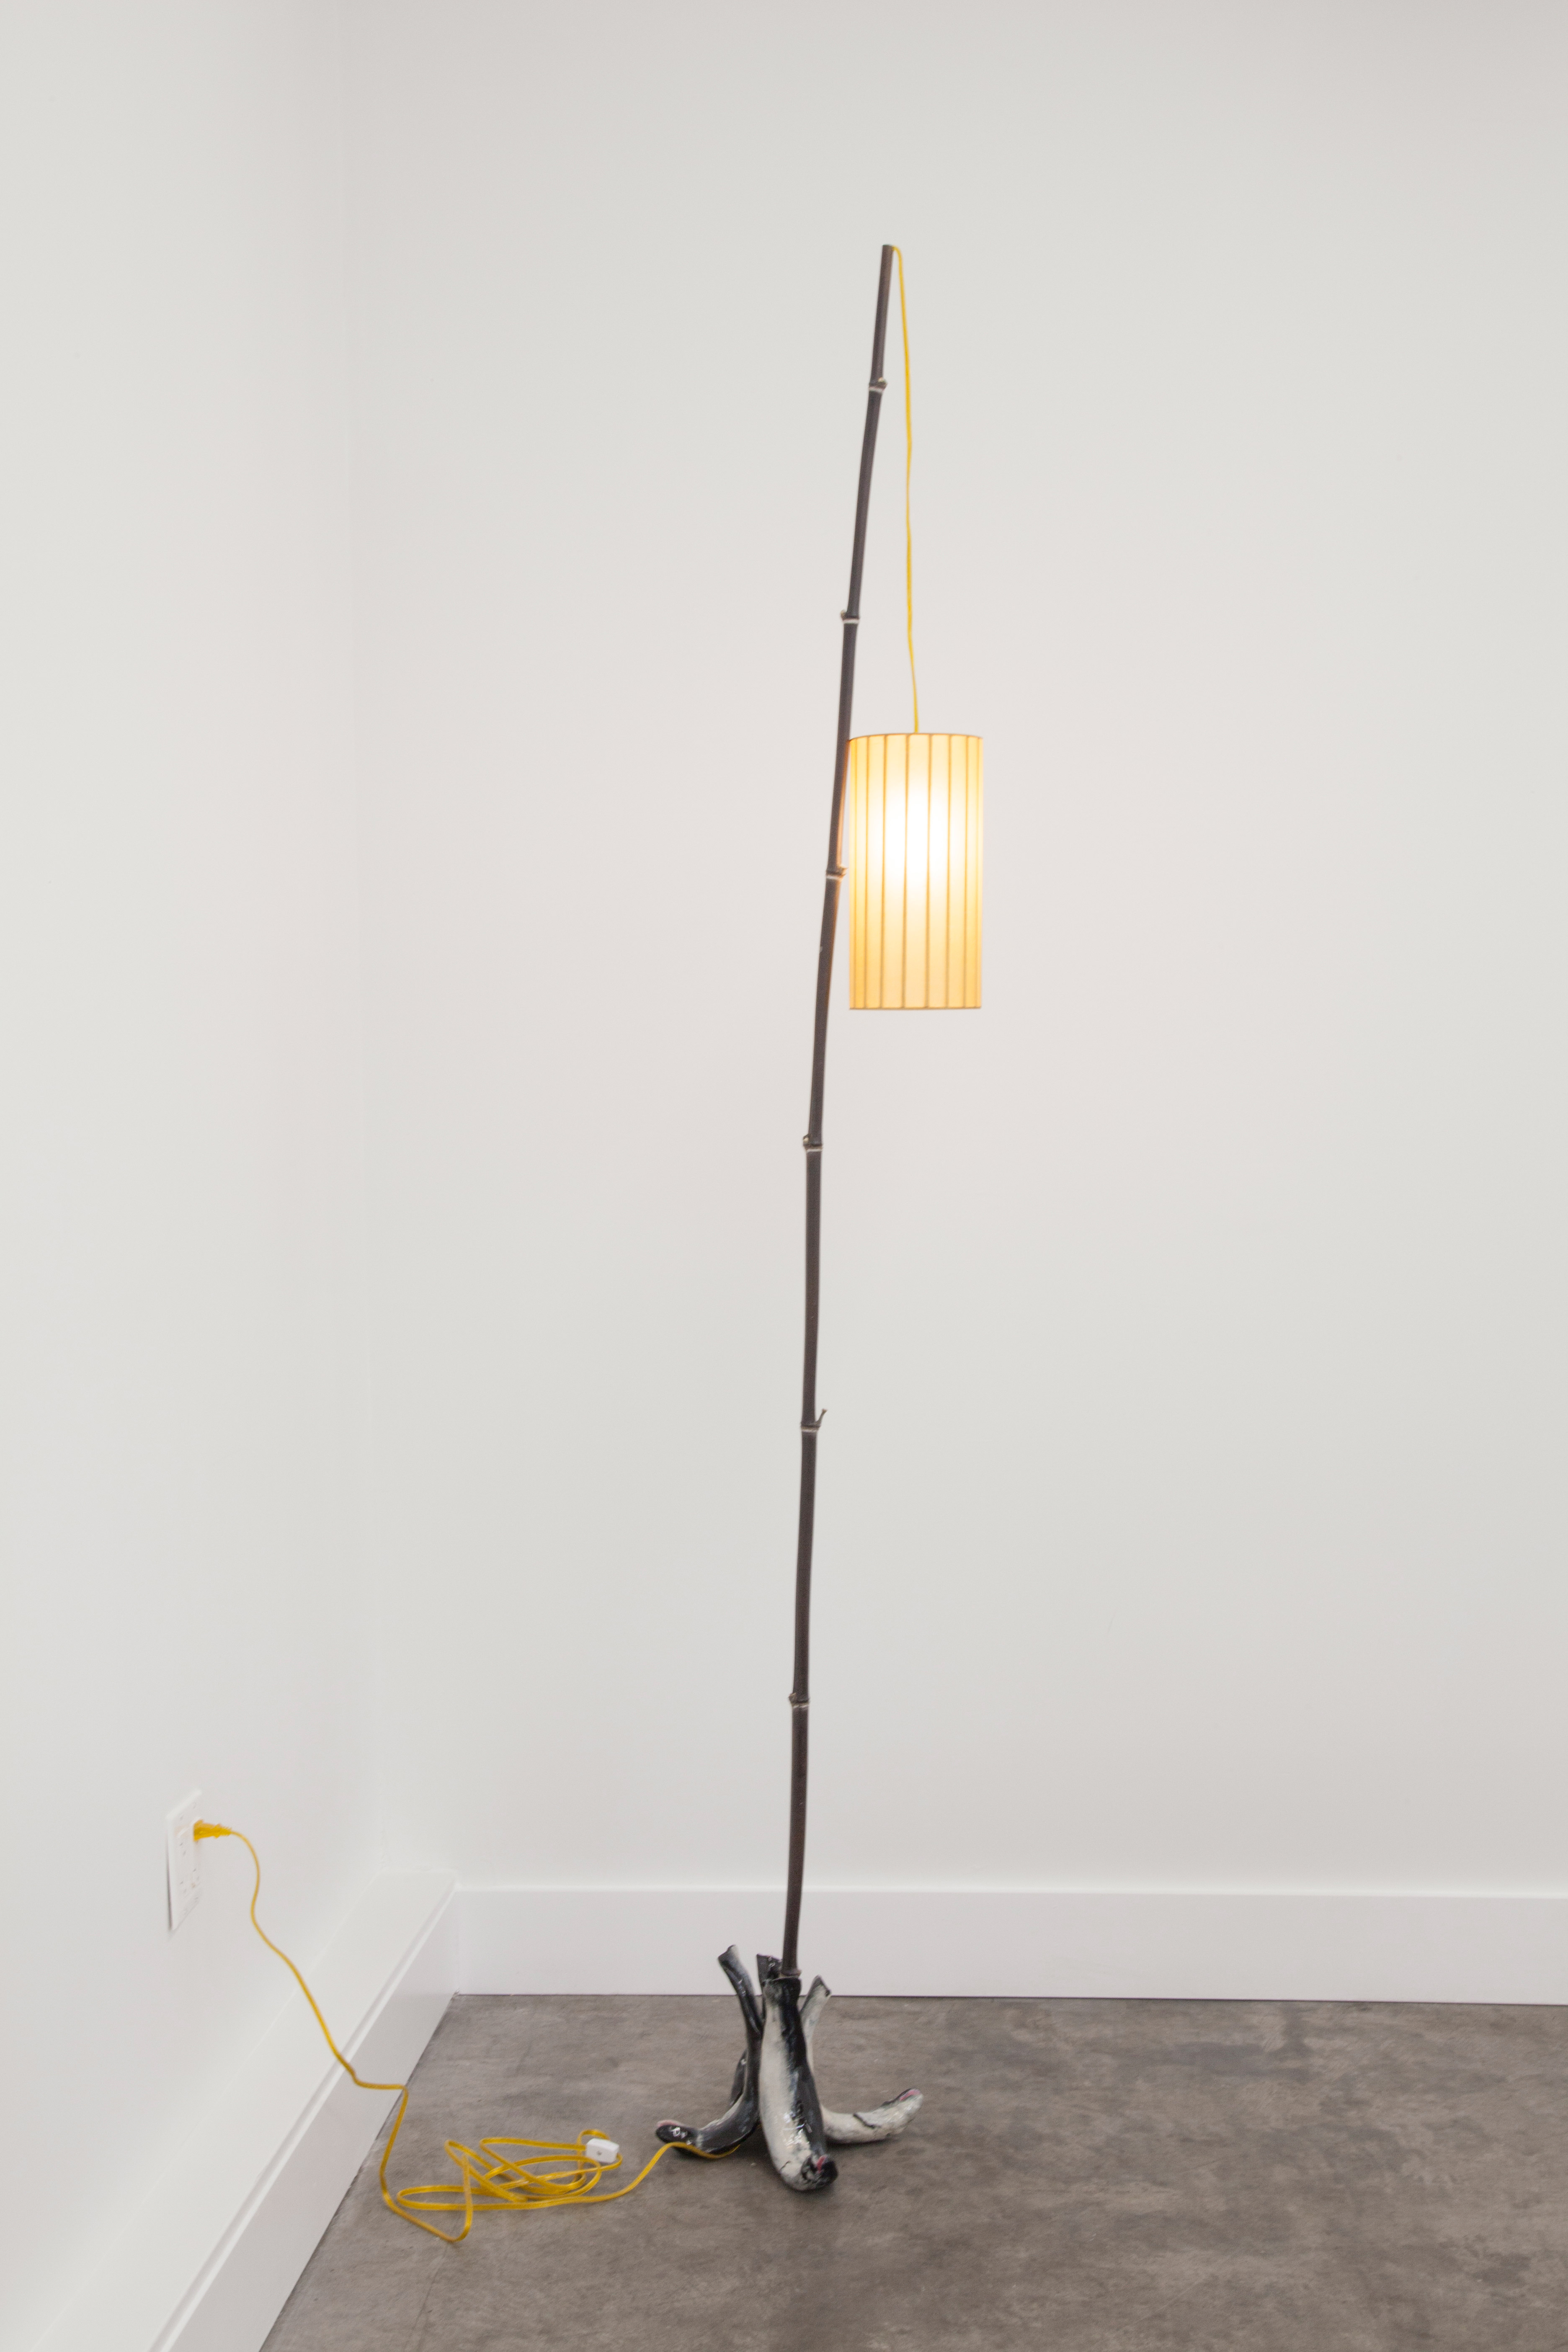 Electrical hardware, cord, bamboo, laquer, paper, light bulb, socket, glazed ceramic, hot glue, wood approx. 24 x 102 in